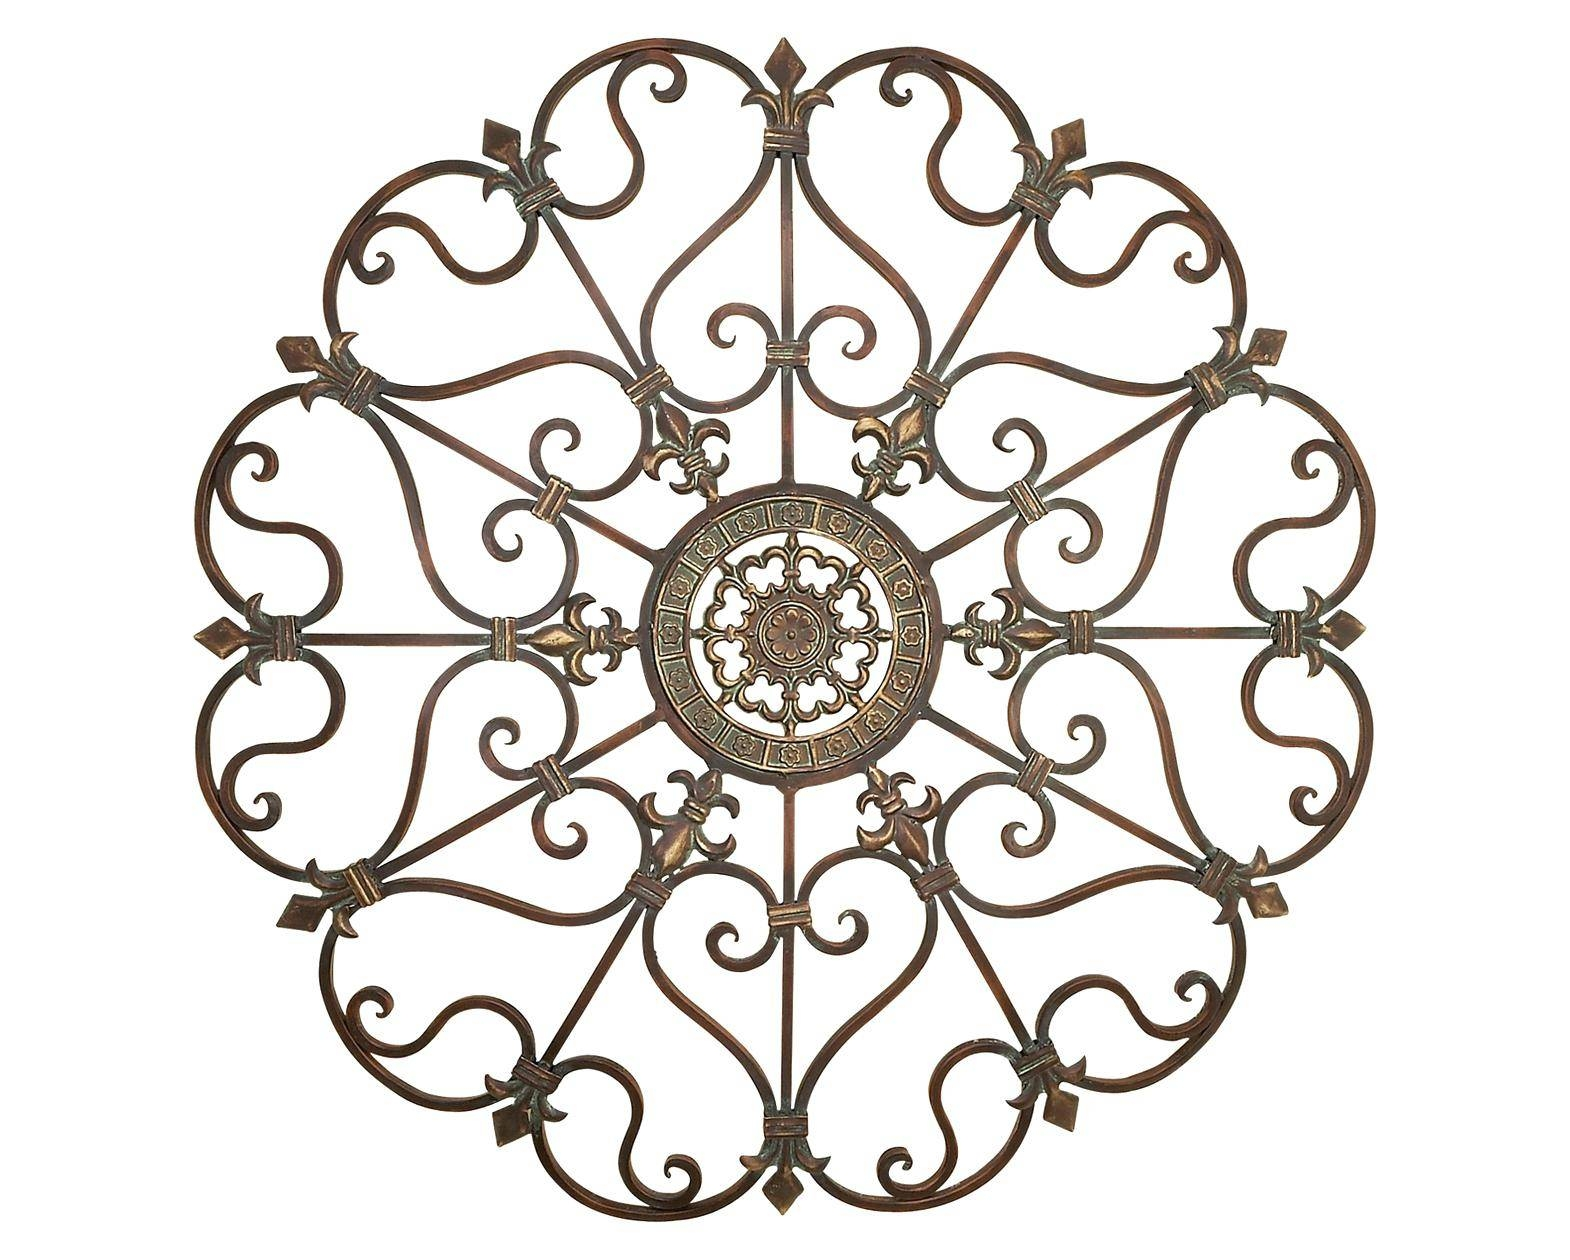 Wall Decor : Bright Wrought Iron Decorative Wall Panels 2 Xl Pertaining To Recent Iron Gate Wall Art (View 16 of 25)